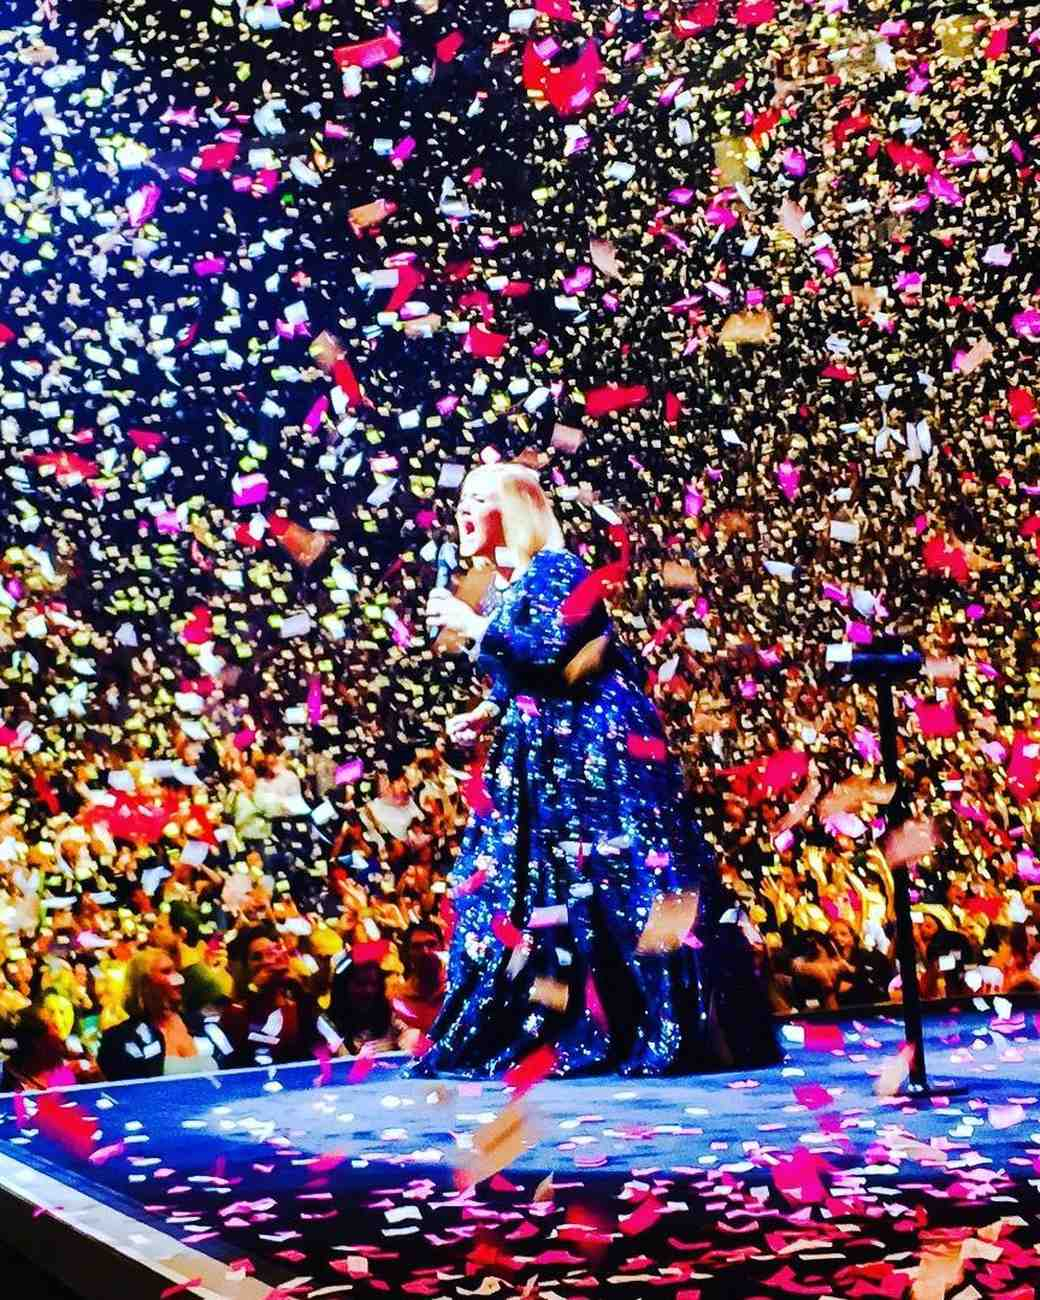 Adele's Boyfriend Replaced Confetti at Her Concert with Handwritten Love Notes